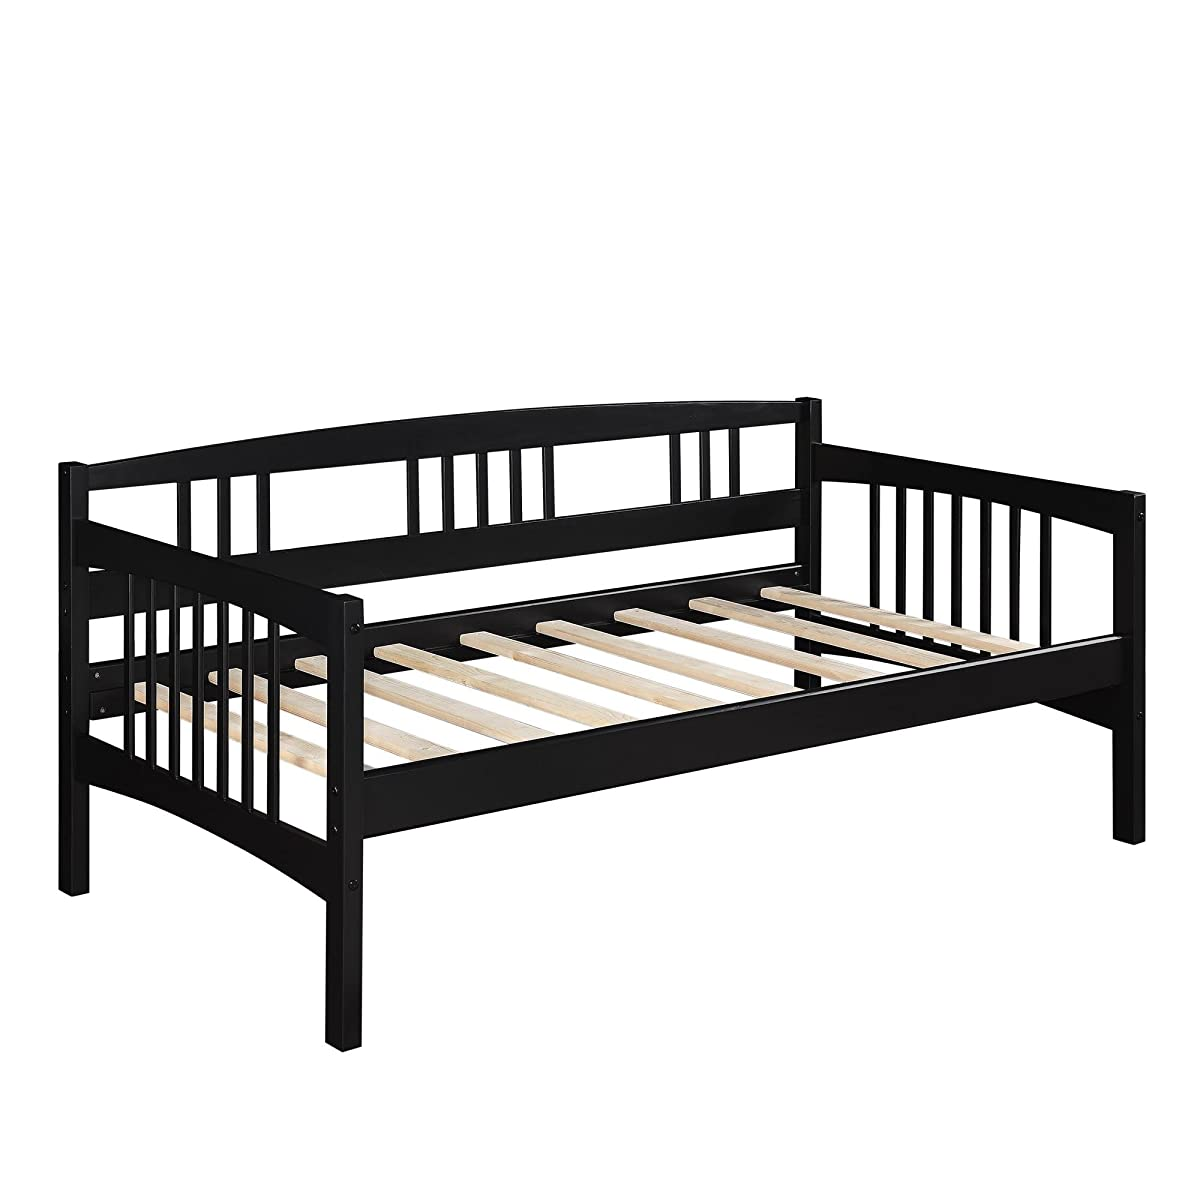 Dorel Living Kayden Daybed Solid Wood, Twin, Black